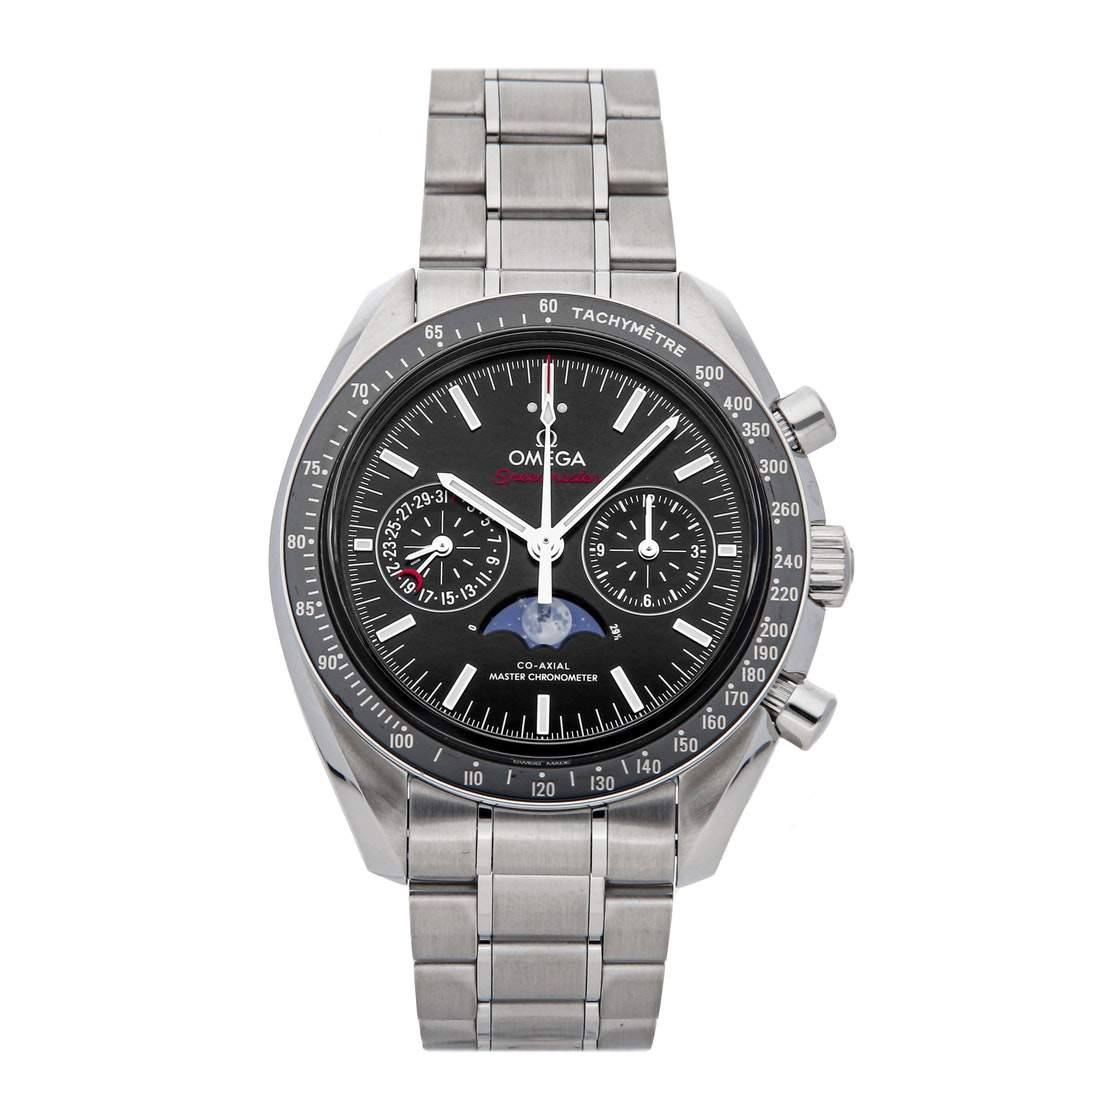 Omega Black Stainless Steel Speedmaster Moon Phase Chronograph 304.30.44.52.01.001 Men's Wristwatch 44 MM